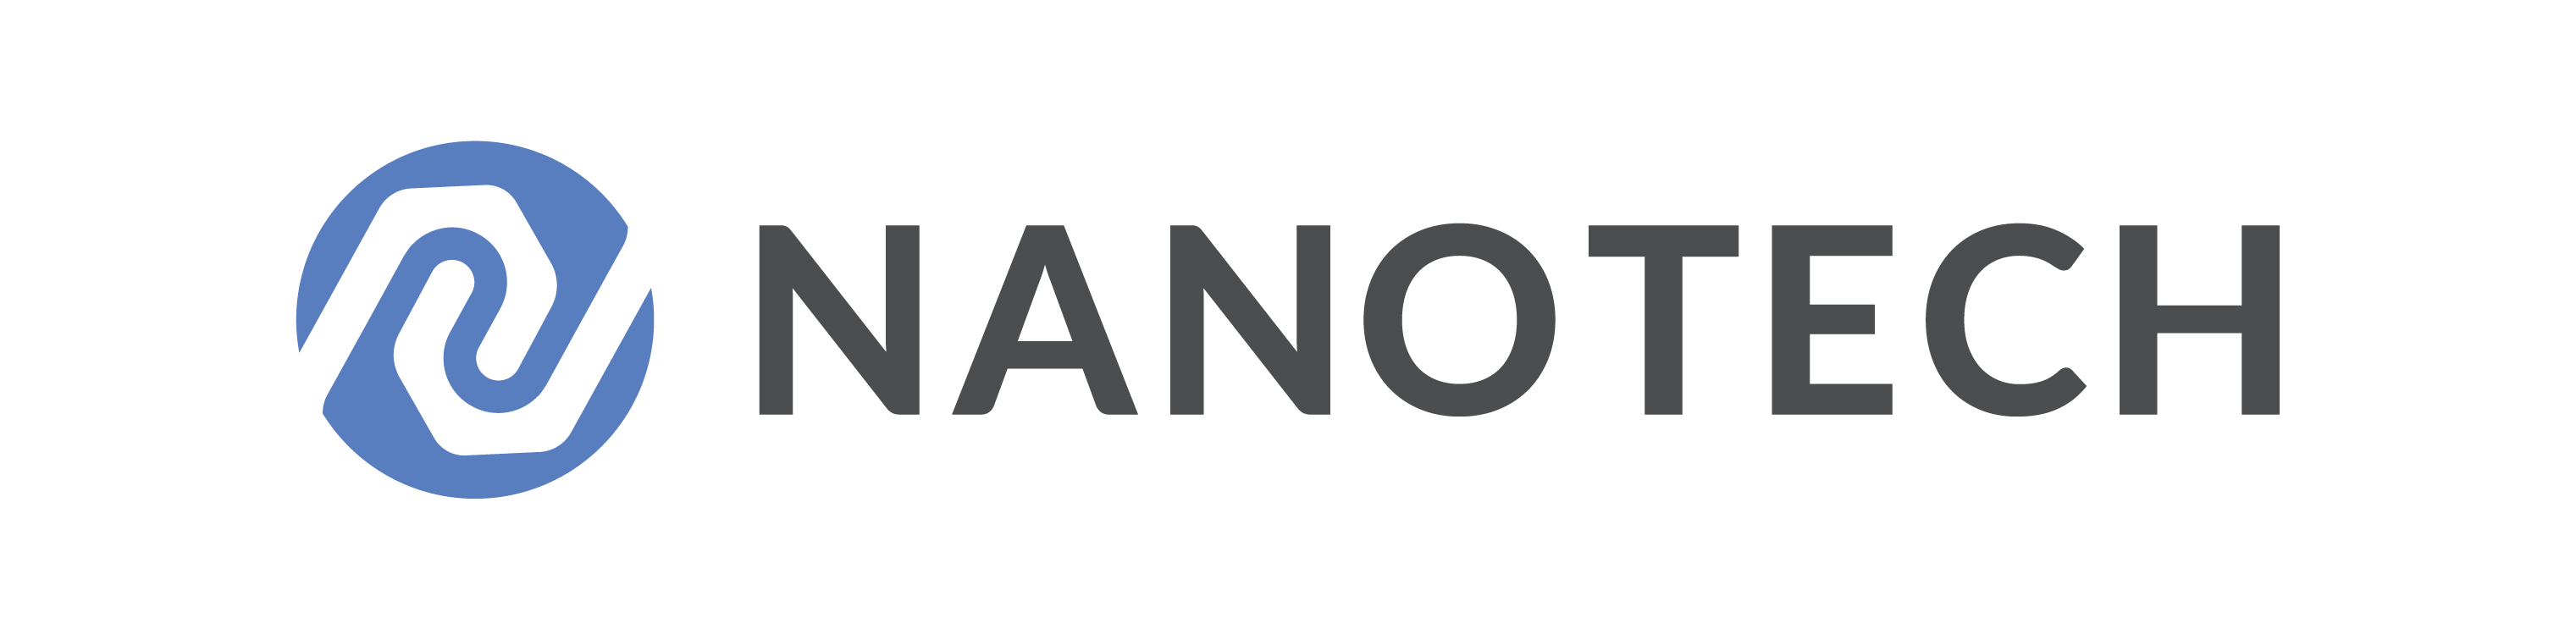 Nanotech Secures Multi-year Brand Protection Contract with World Baseball Softball Confederation